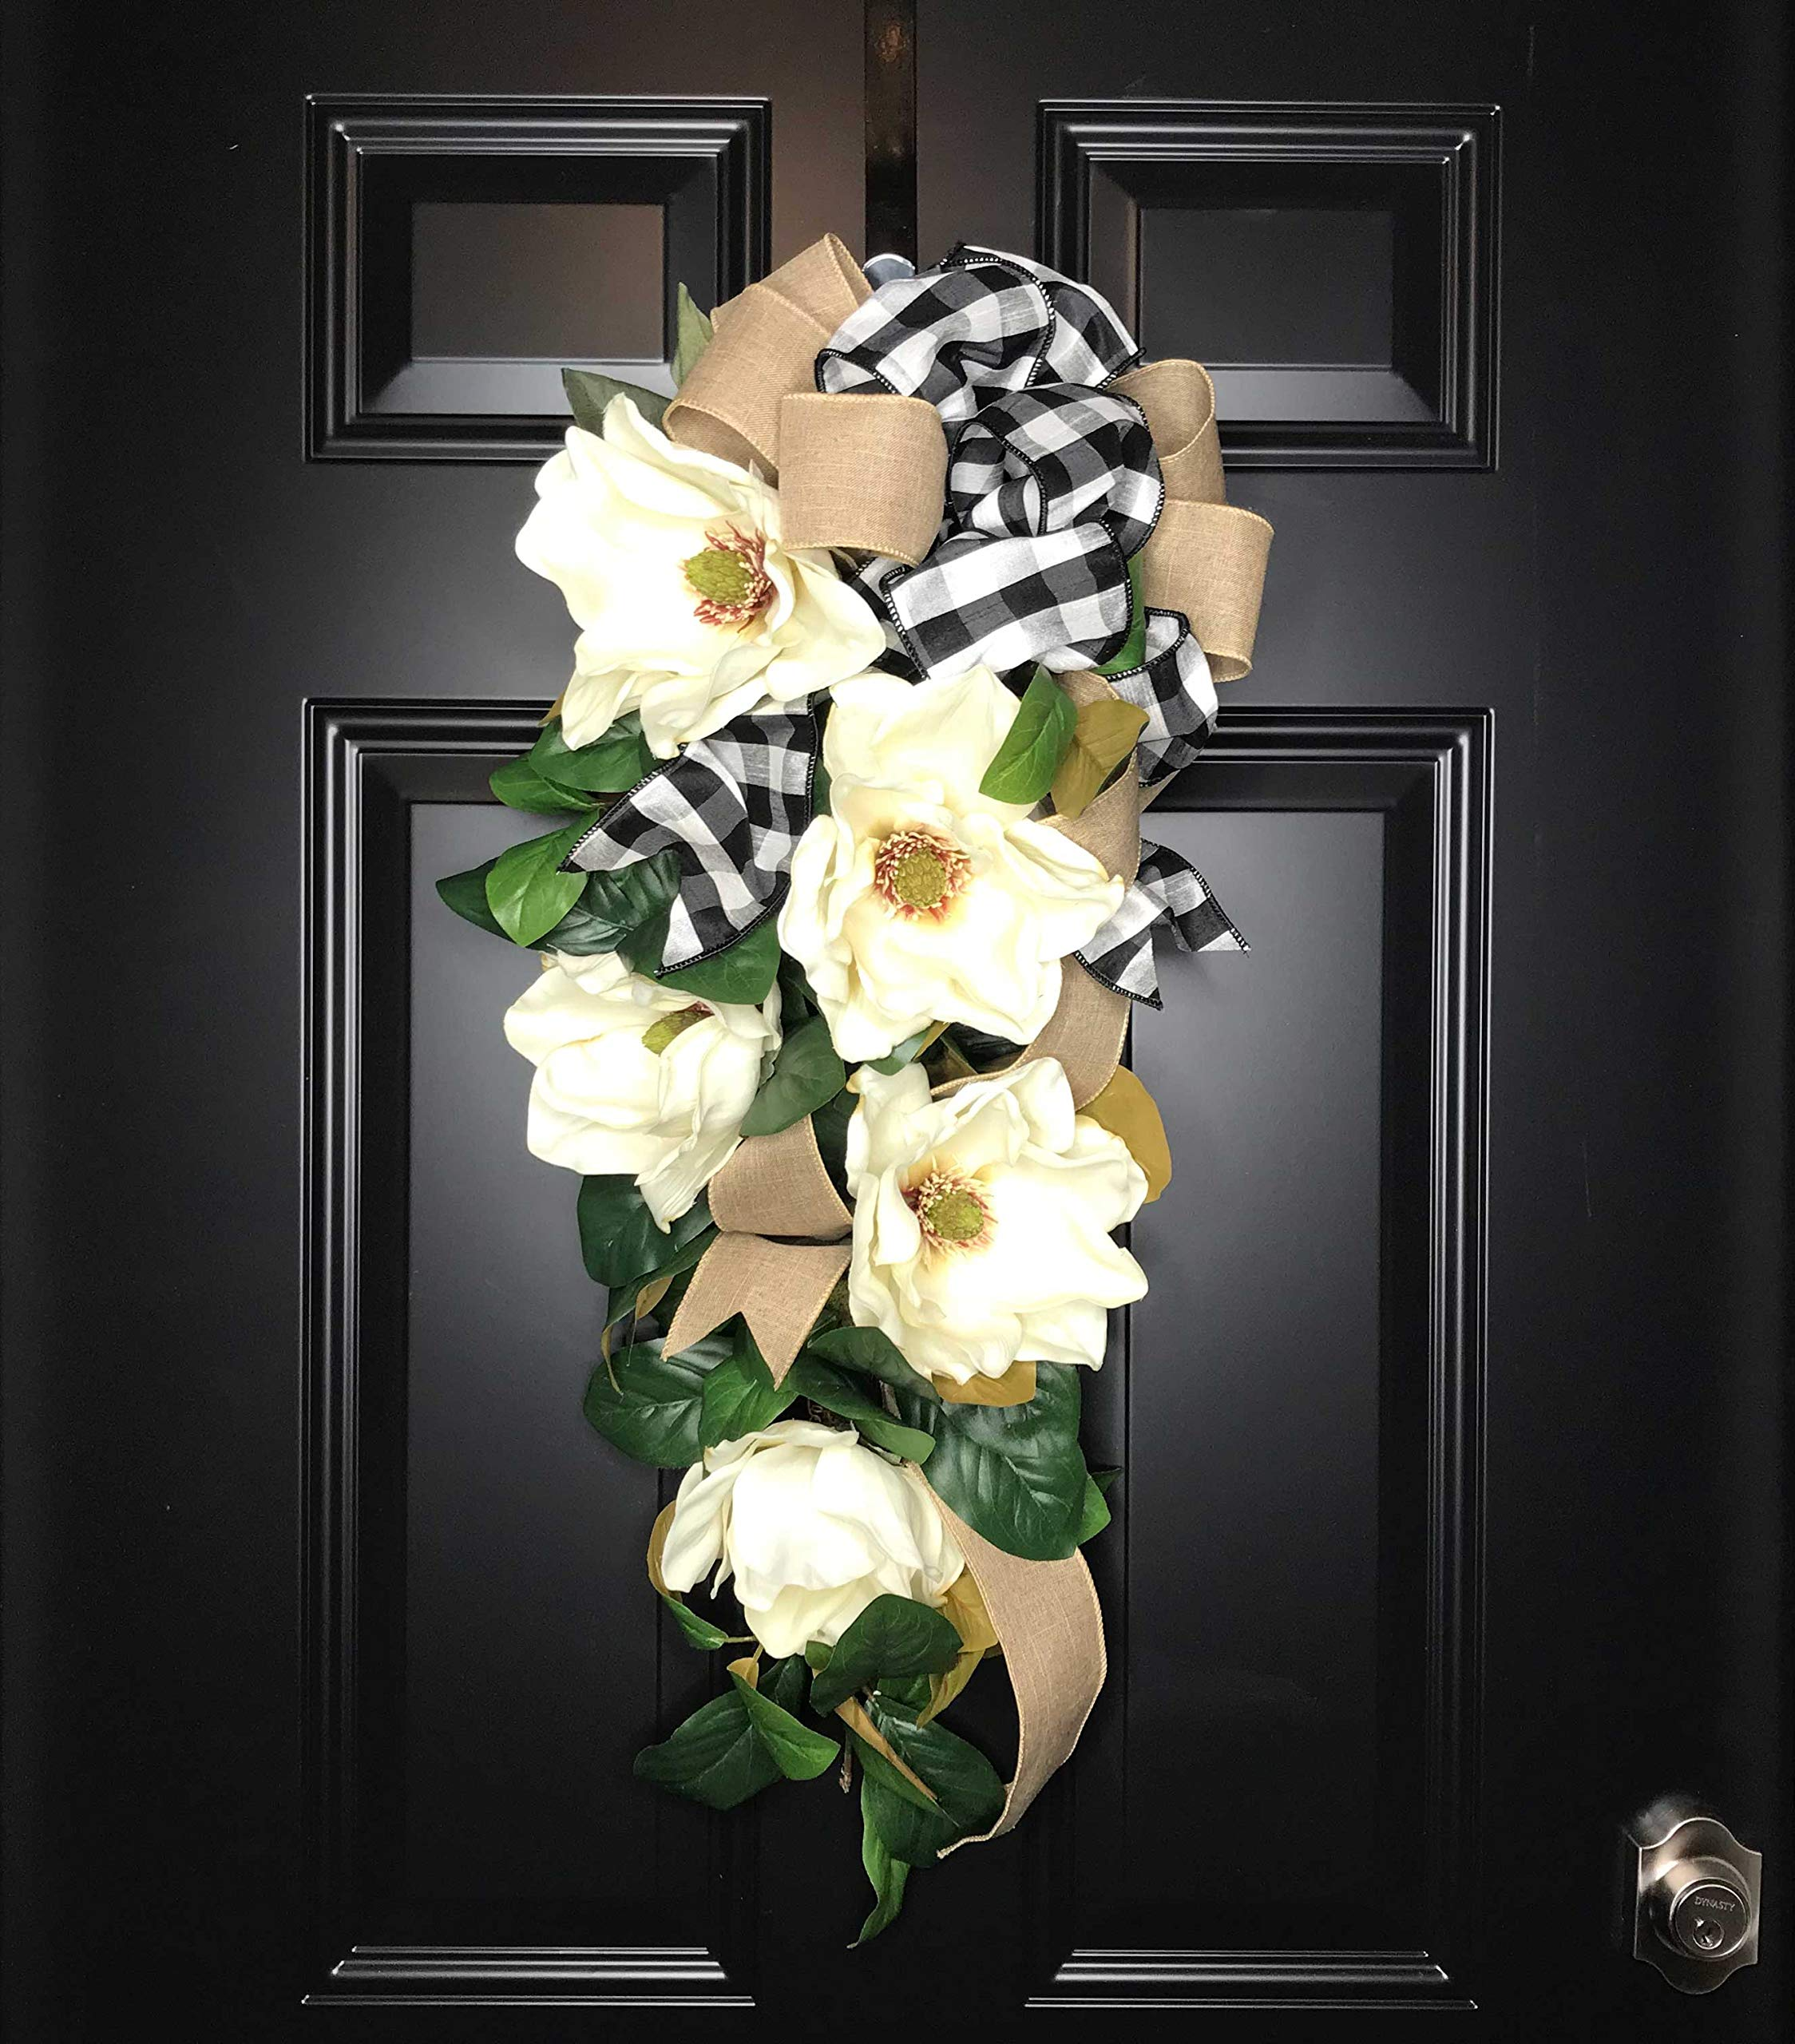 Large Southern Magnolia Teardrop Floral Swag Wreath w/Buffalo Plaid/Check Bow for Front Door Porch Indoor Wall Farmhouse Decor Spring Springtime Summer Summertime Year Round, Handmade, 30''L x 18'' W by Wreath and Vine, LLC (Image #8)